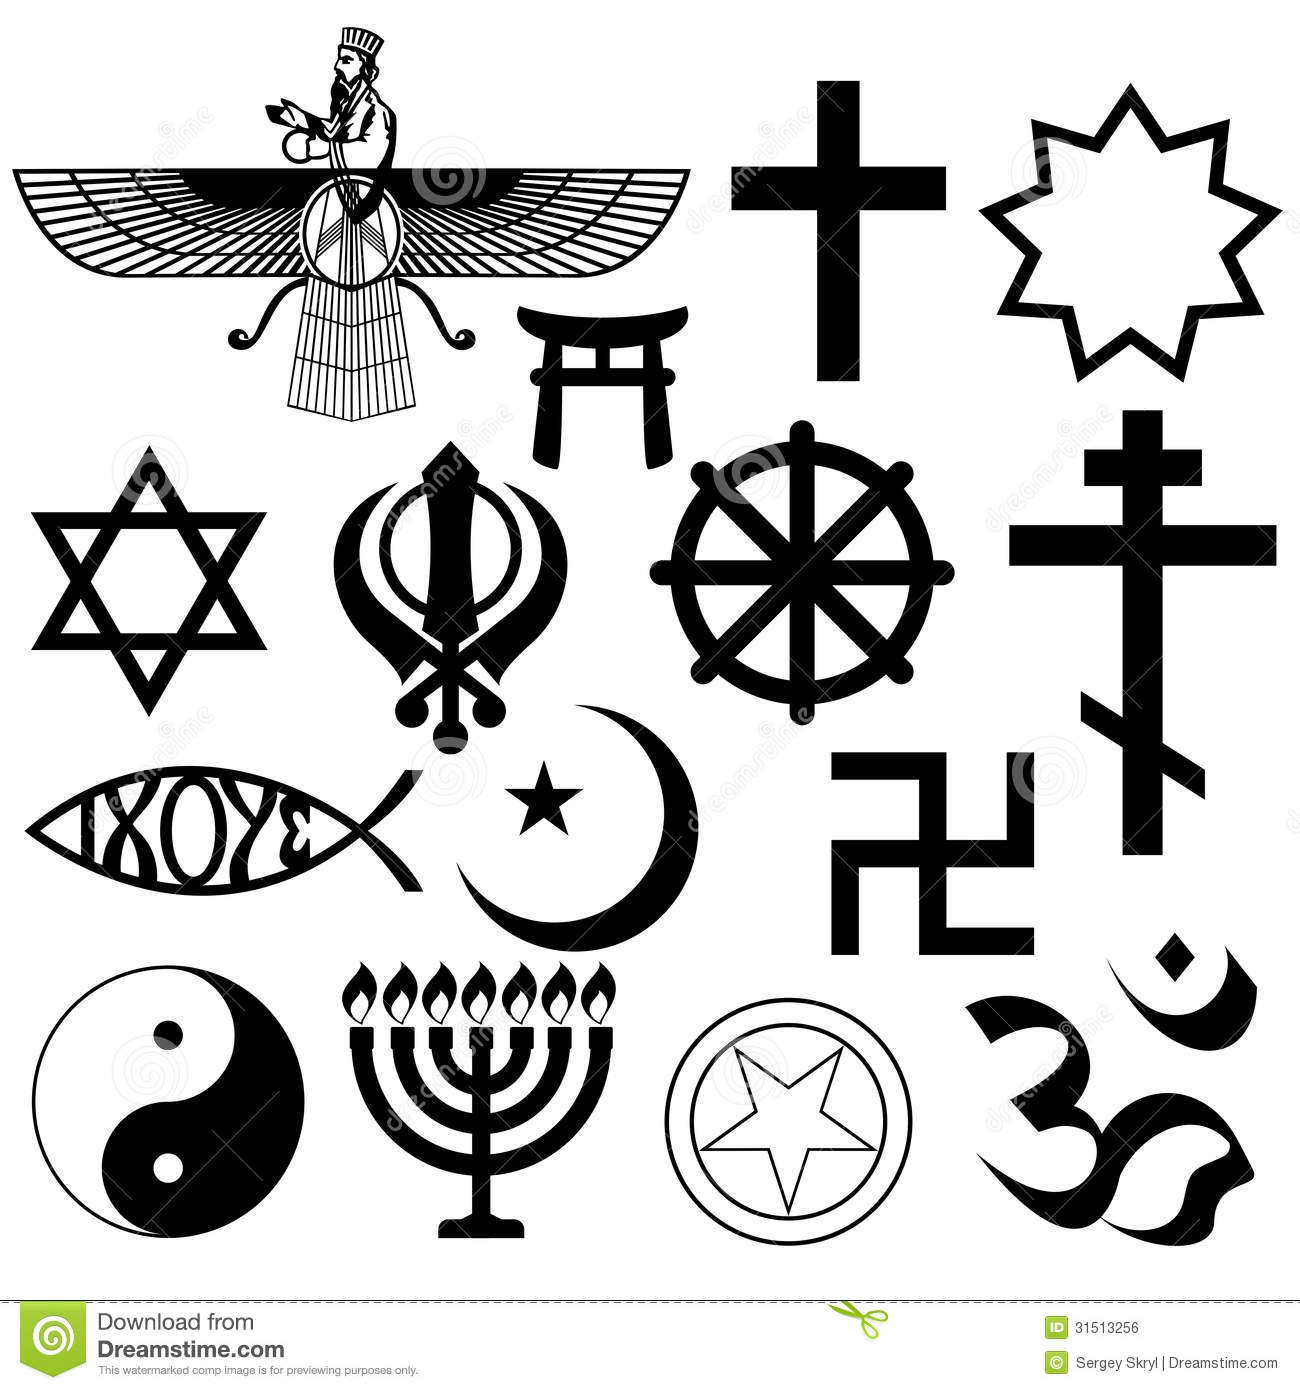 a discussion of the meaning of religious symbols